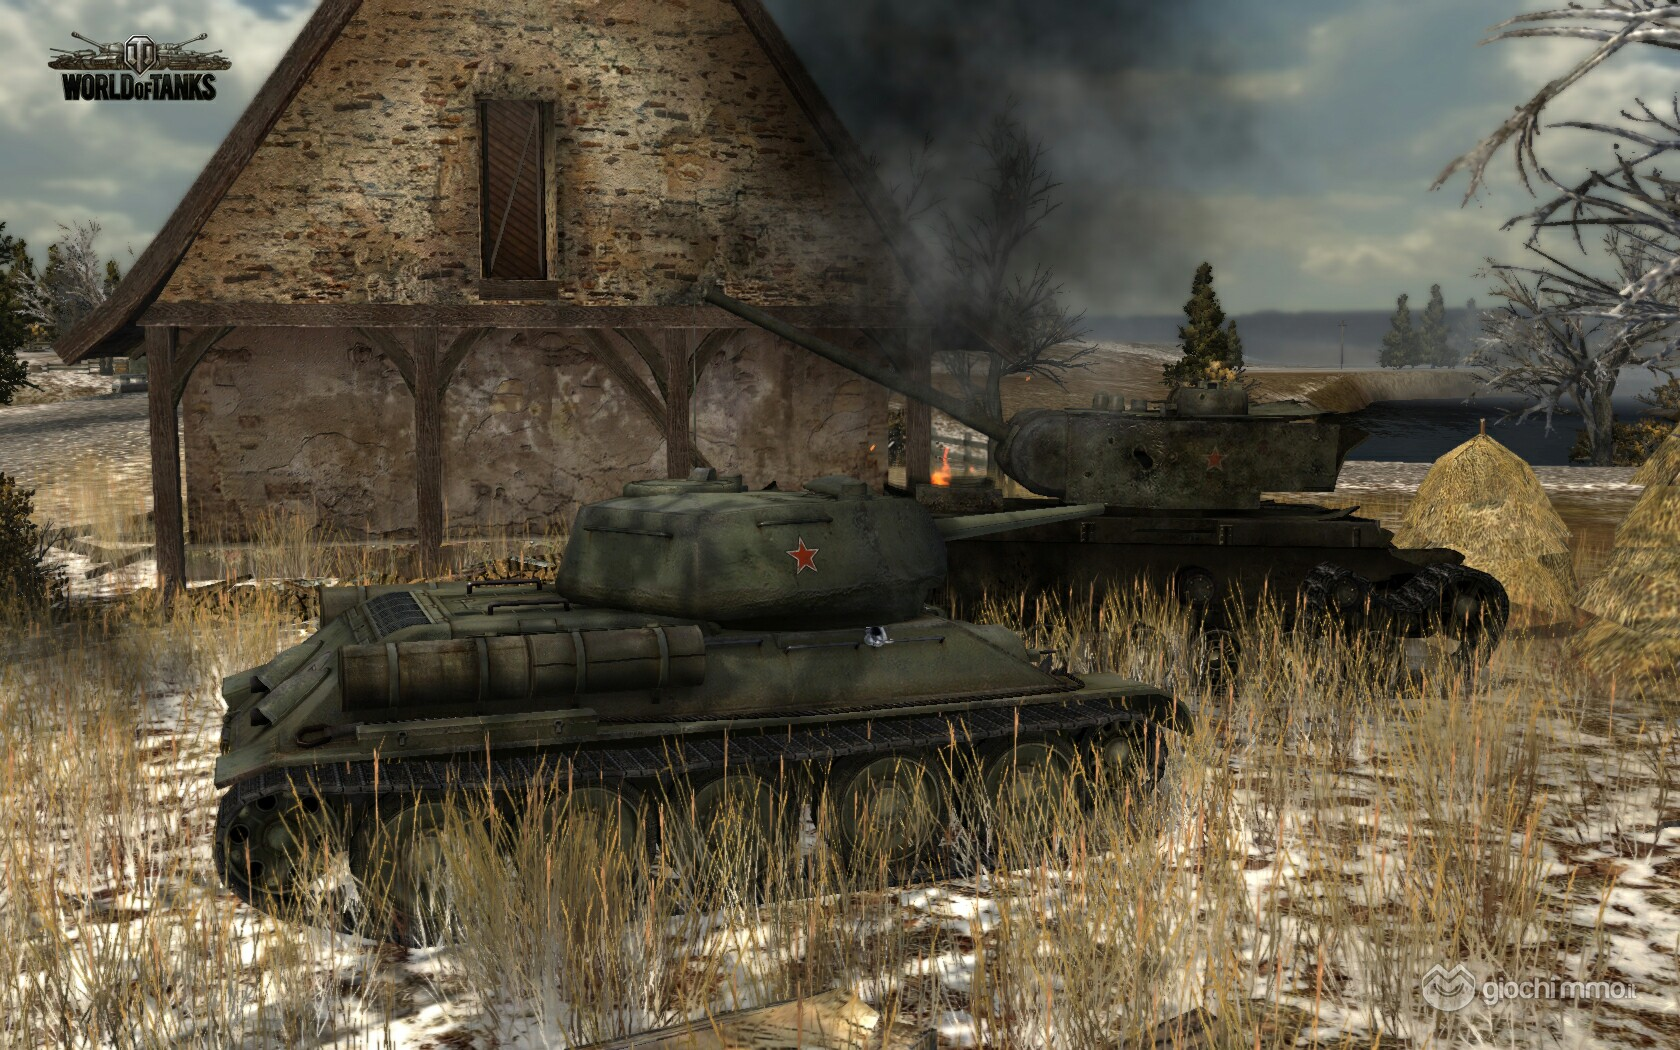 Clicca sull'immagine per ingrandirlaNome:   World of Tanks screen3.jpgVisite: 87Dimensione:   558.9 KBID: 8208